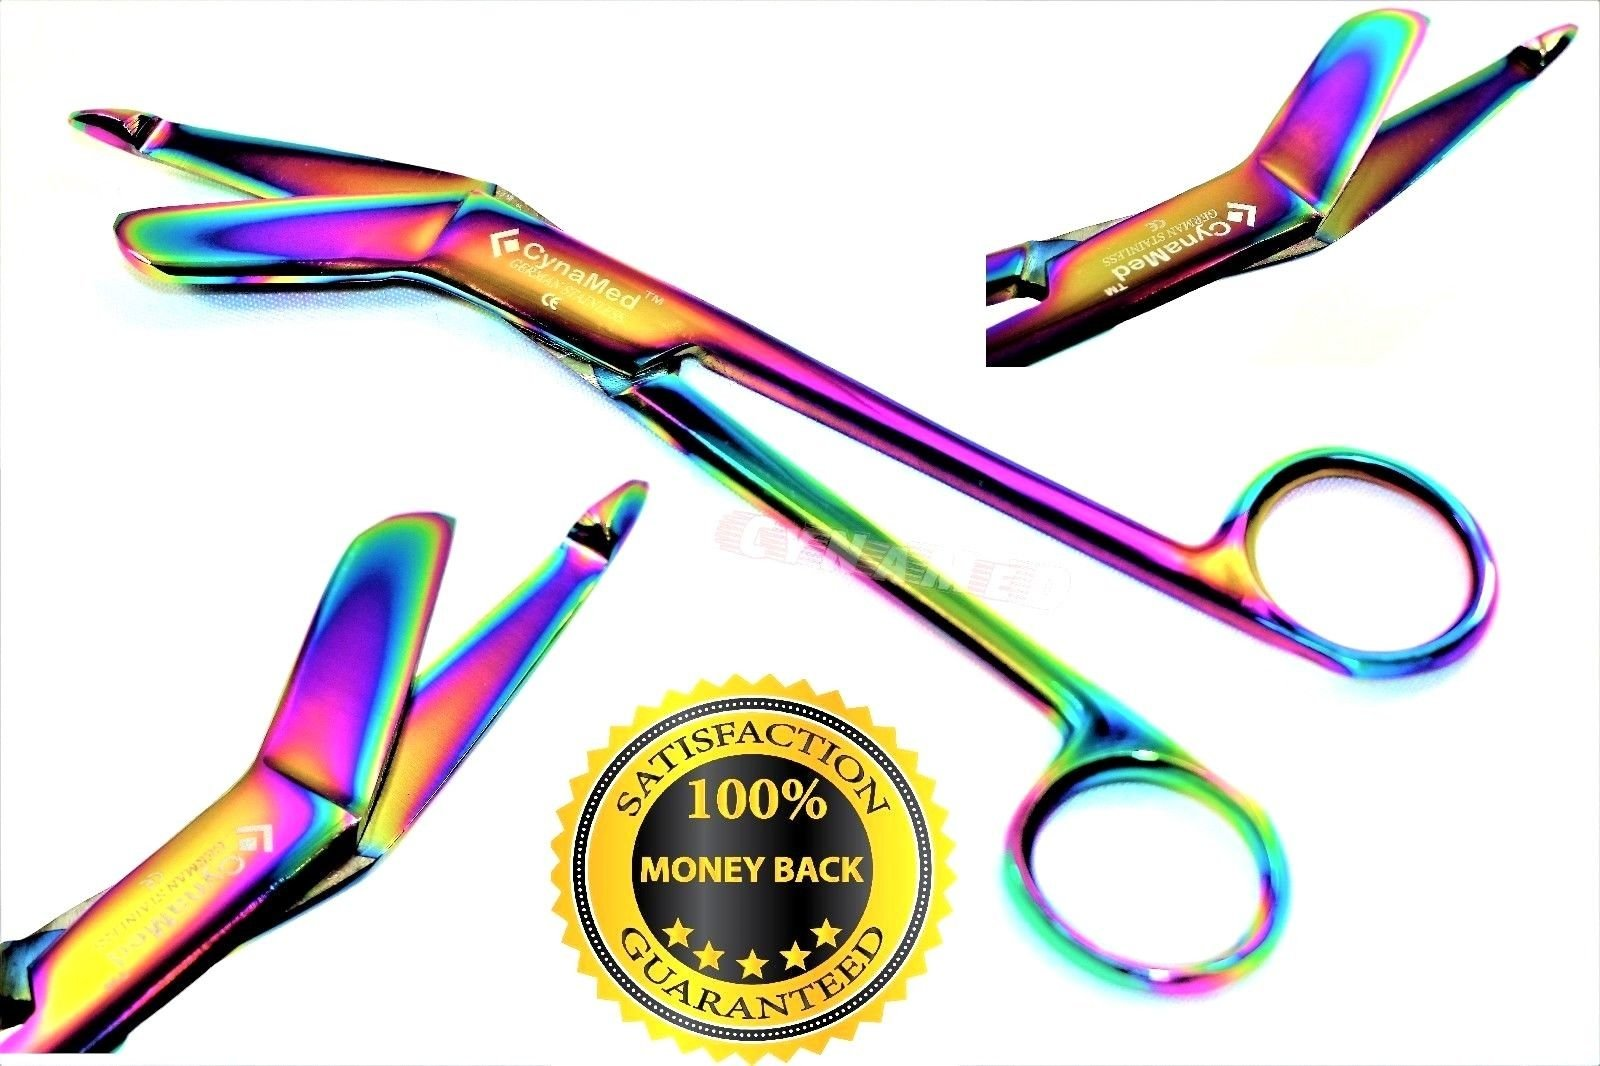 Premium Heavy Duty Lister Bandage Scissors 5.5'' Multi Color Rainbow Color Stainless Steel-(CYNAMED Brand)